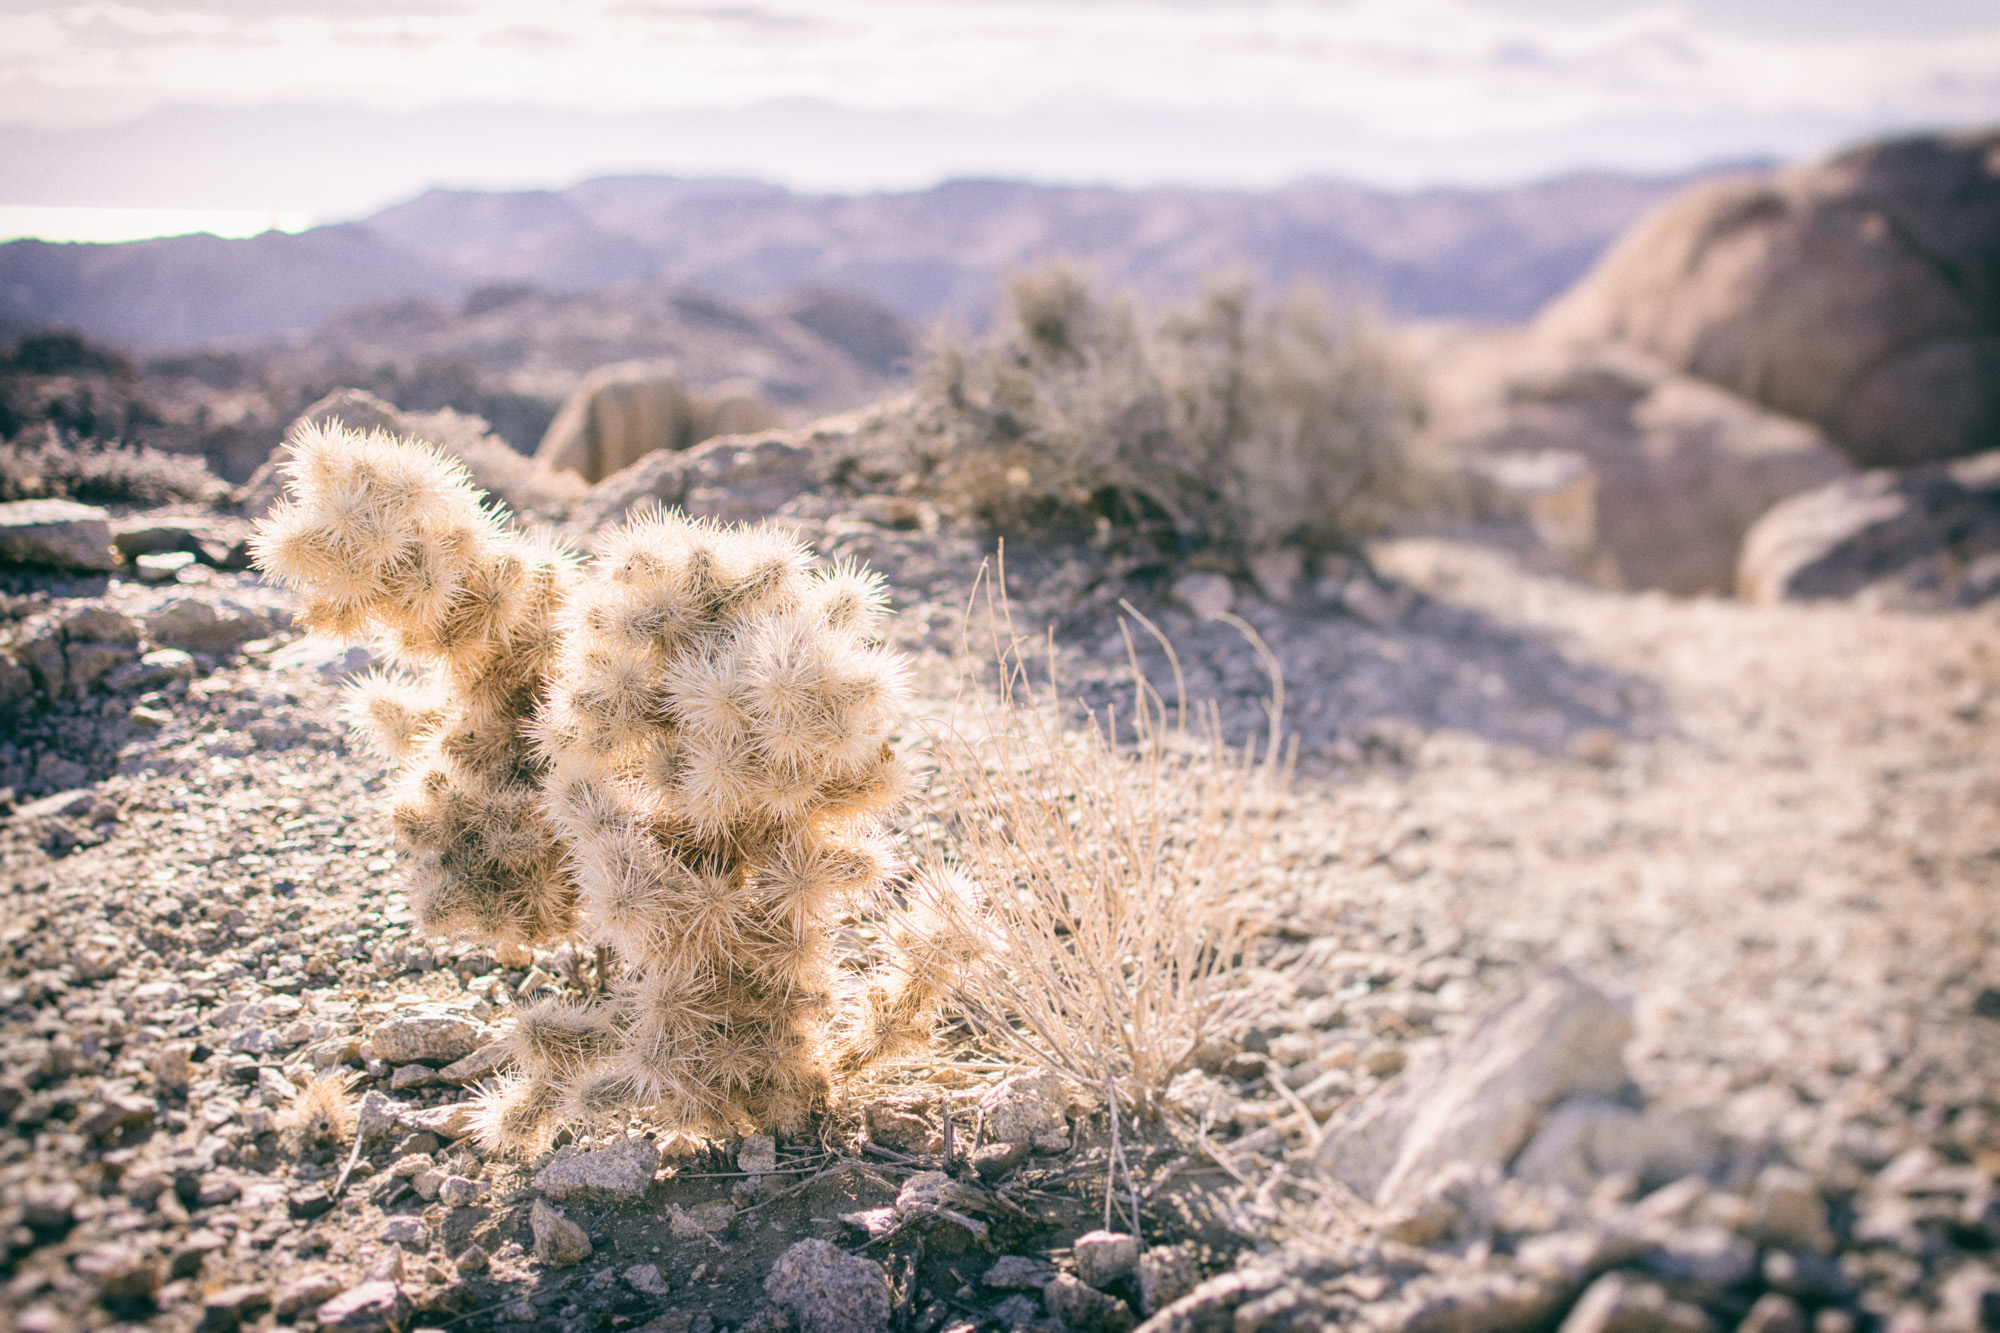 Desert Plant and View